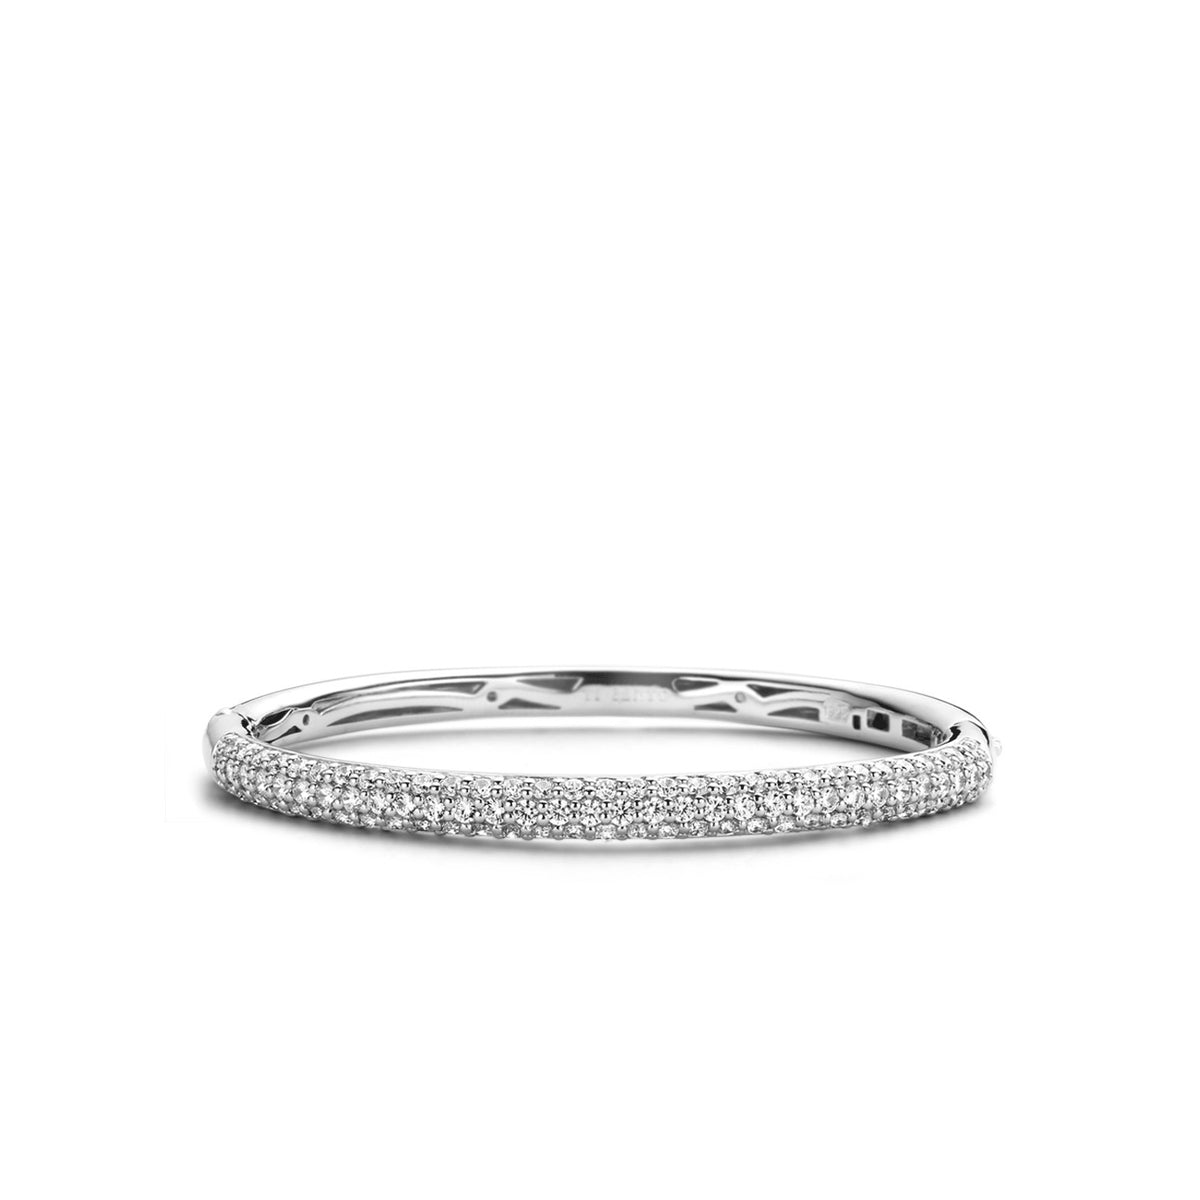 TI SENTO Sterling Silver Three Row Pave Cubic Zirconia Hinged Bracelet